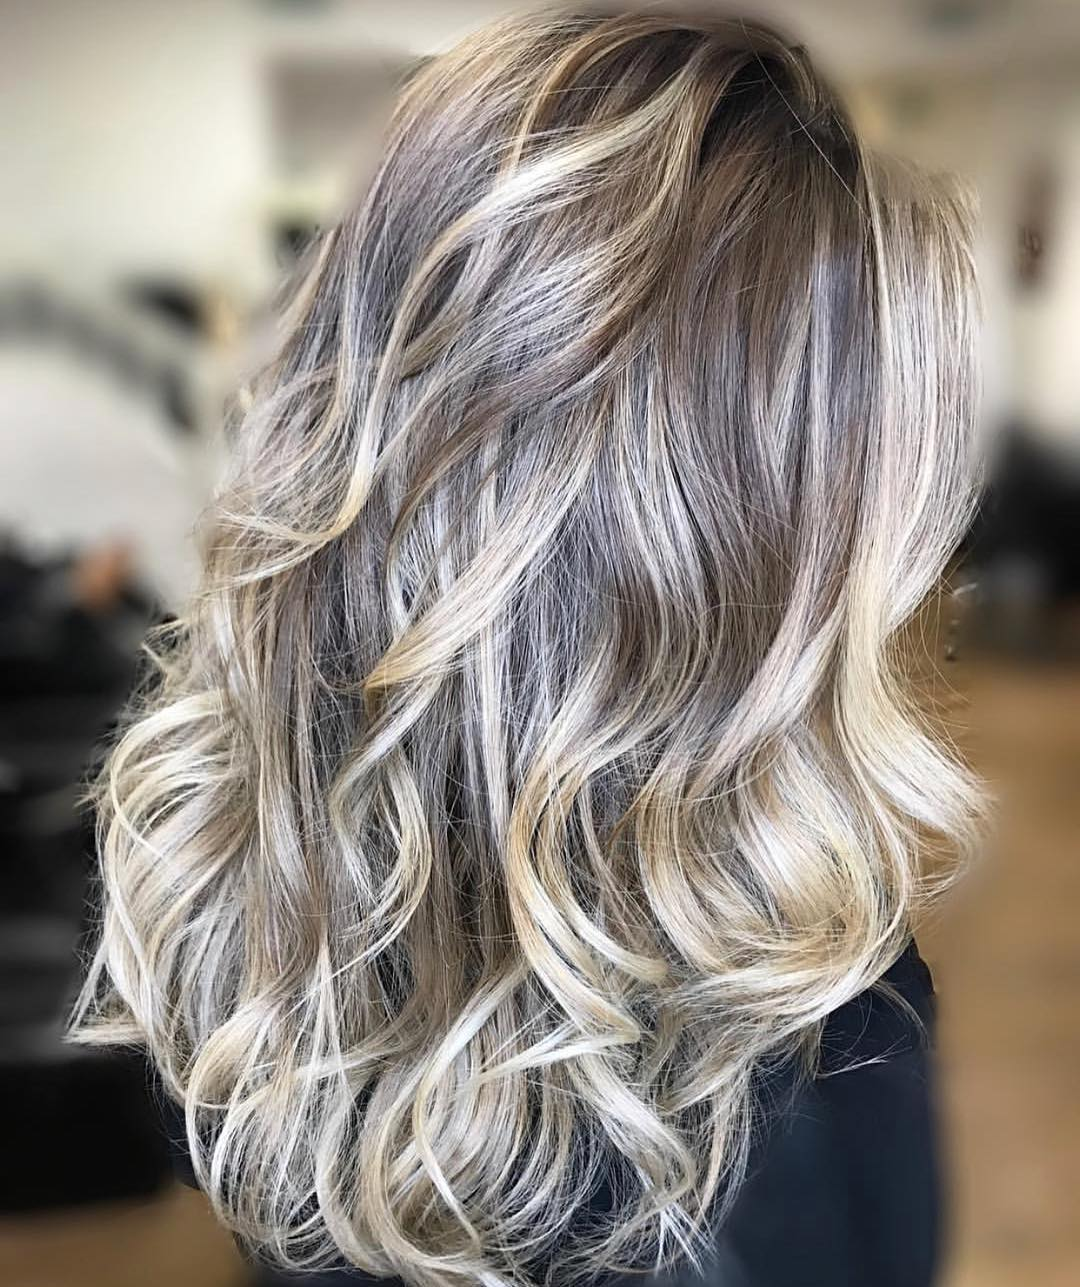 Balayage Hair Ideas for 2020 \u2014 The Right Hairstyles